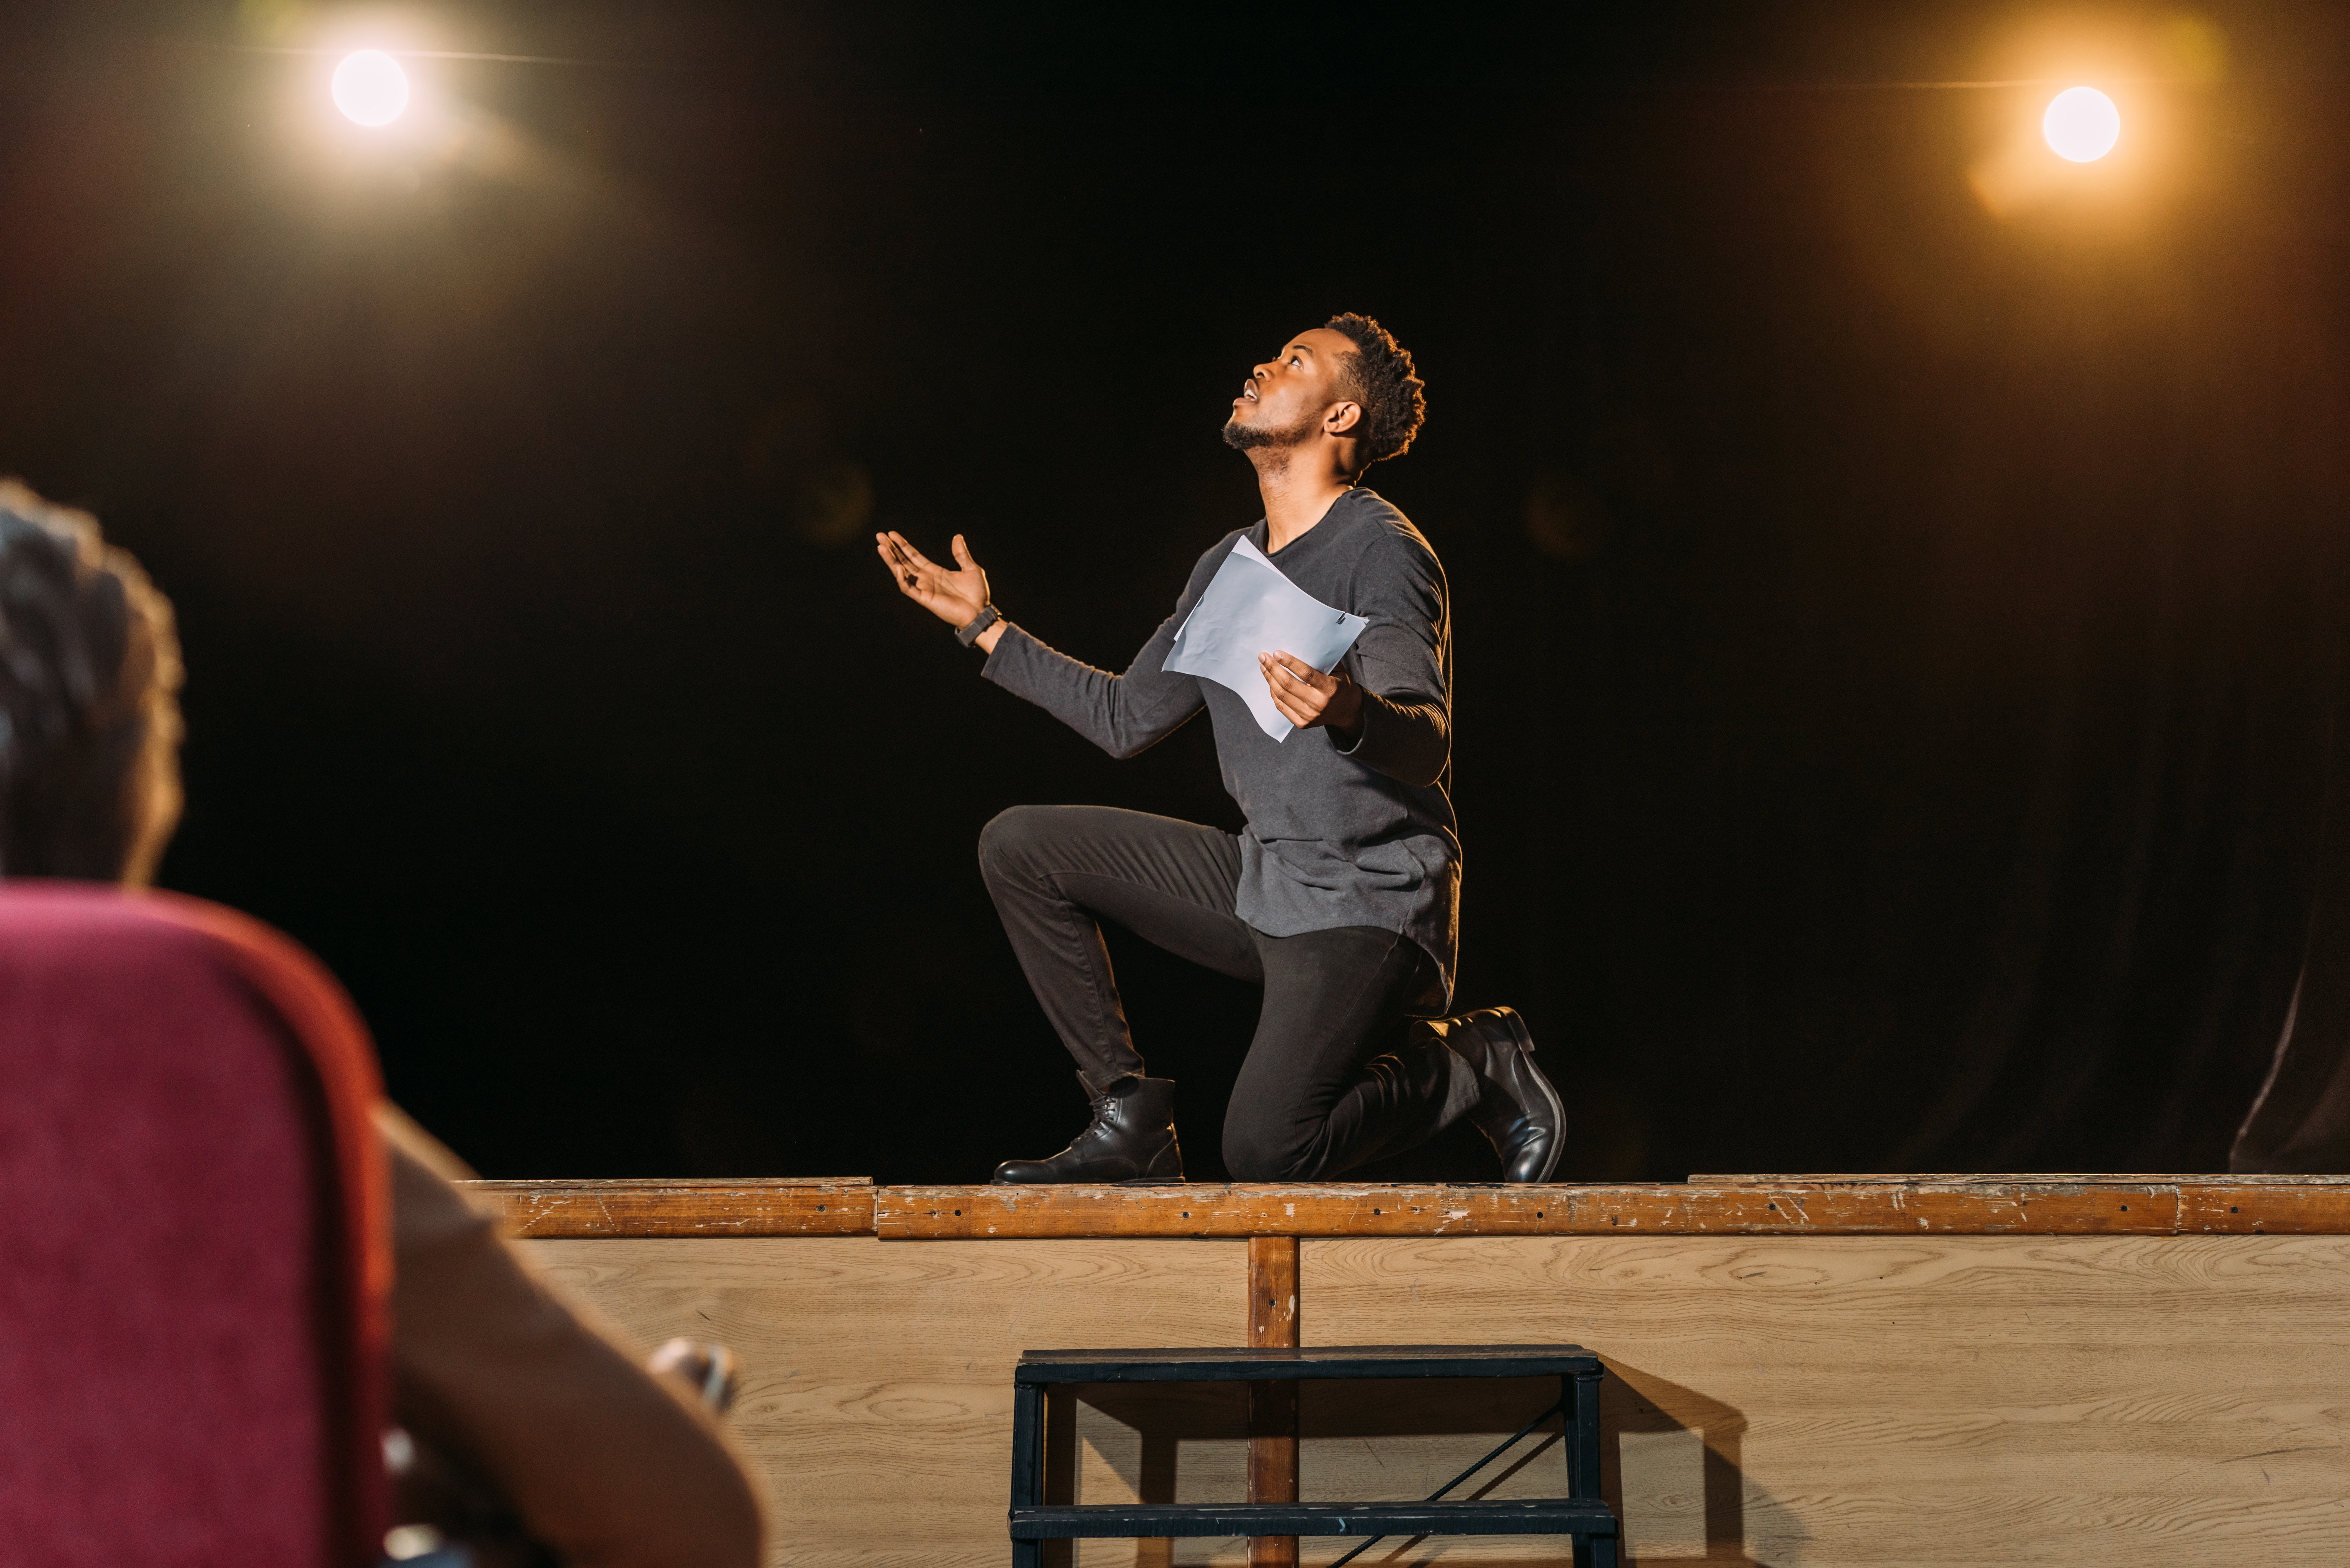 A man auditioning on stage.  Source: Shutterstock